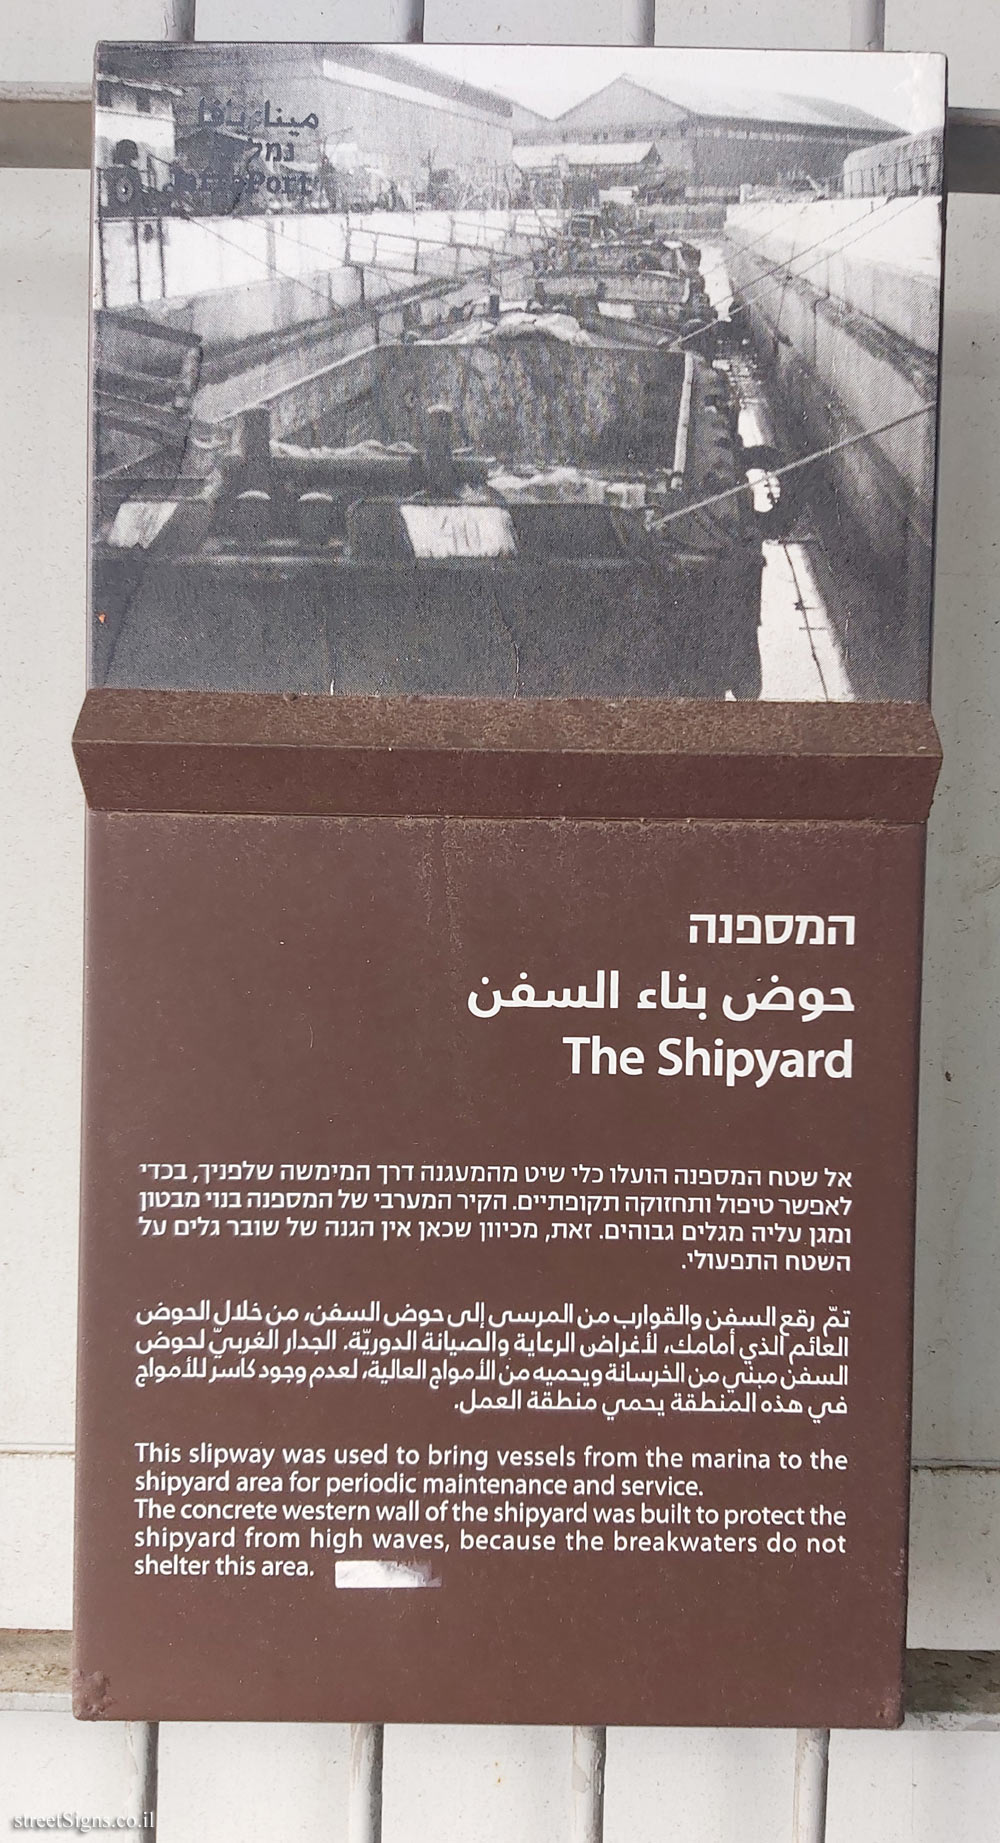 Tel Aviv - Jaffa Port - The Shipyard